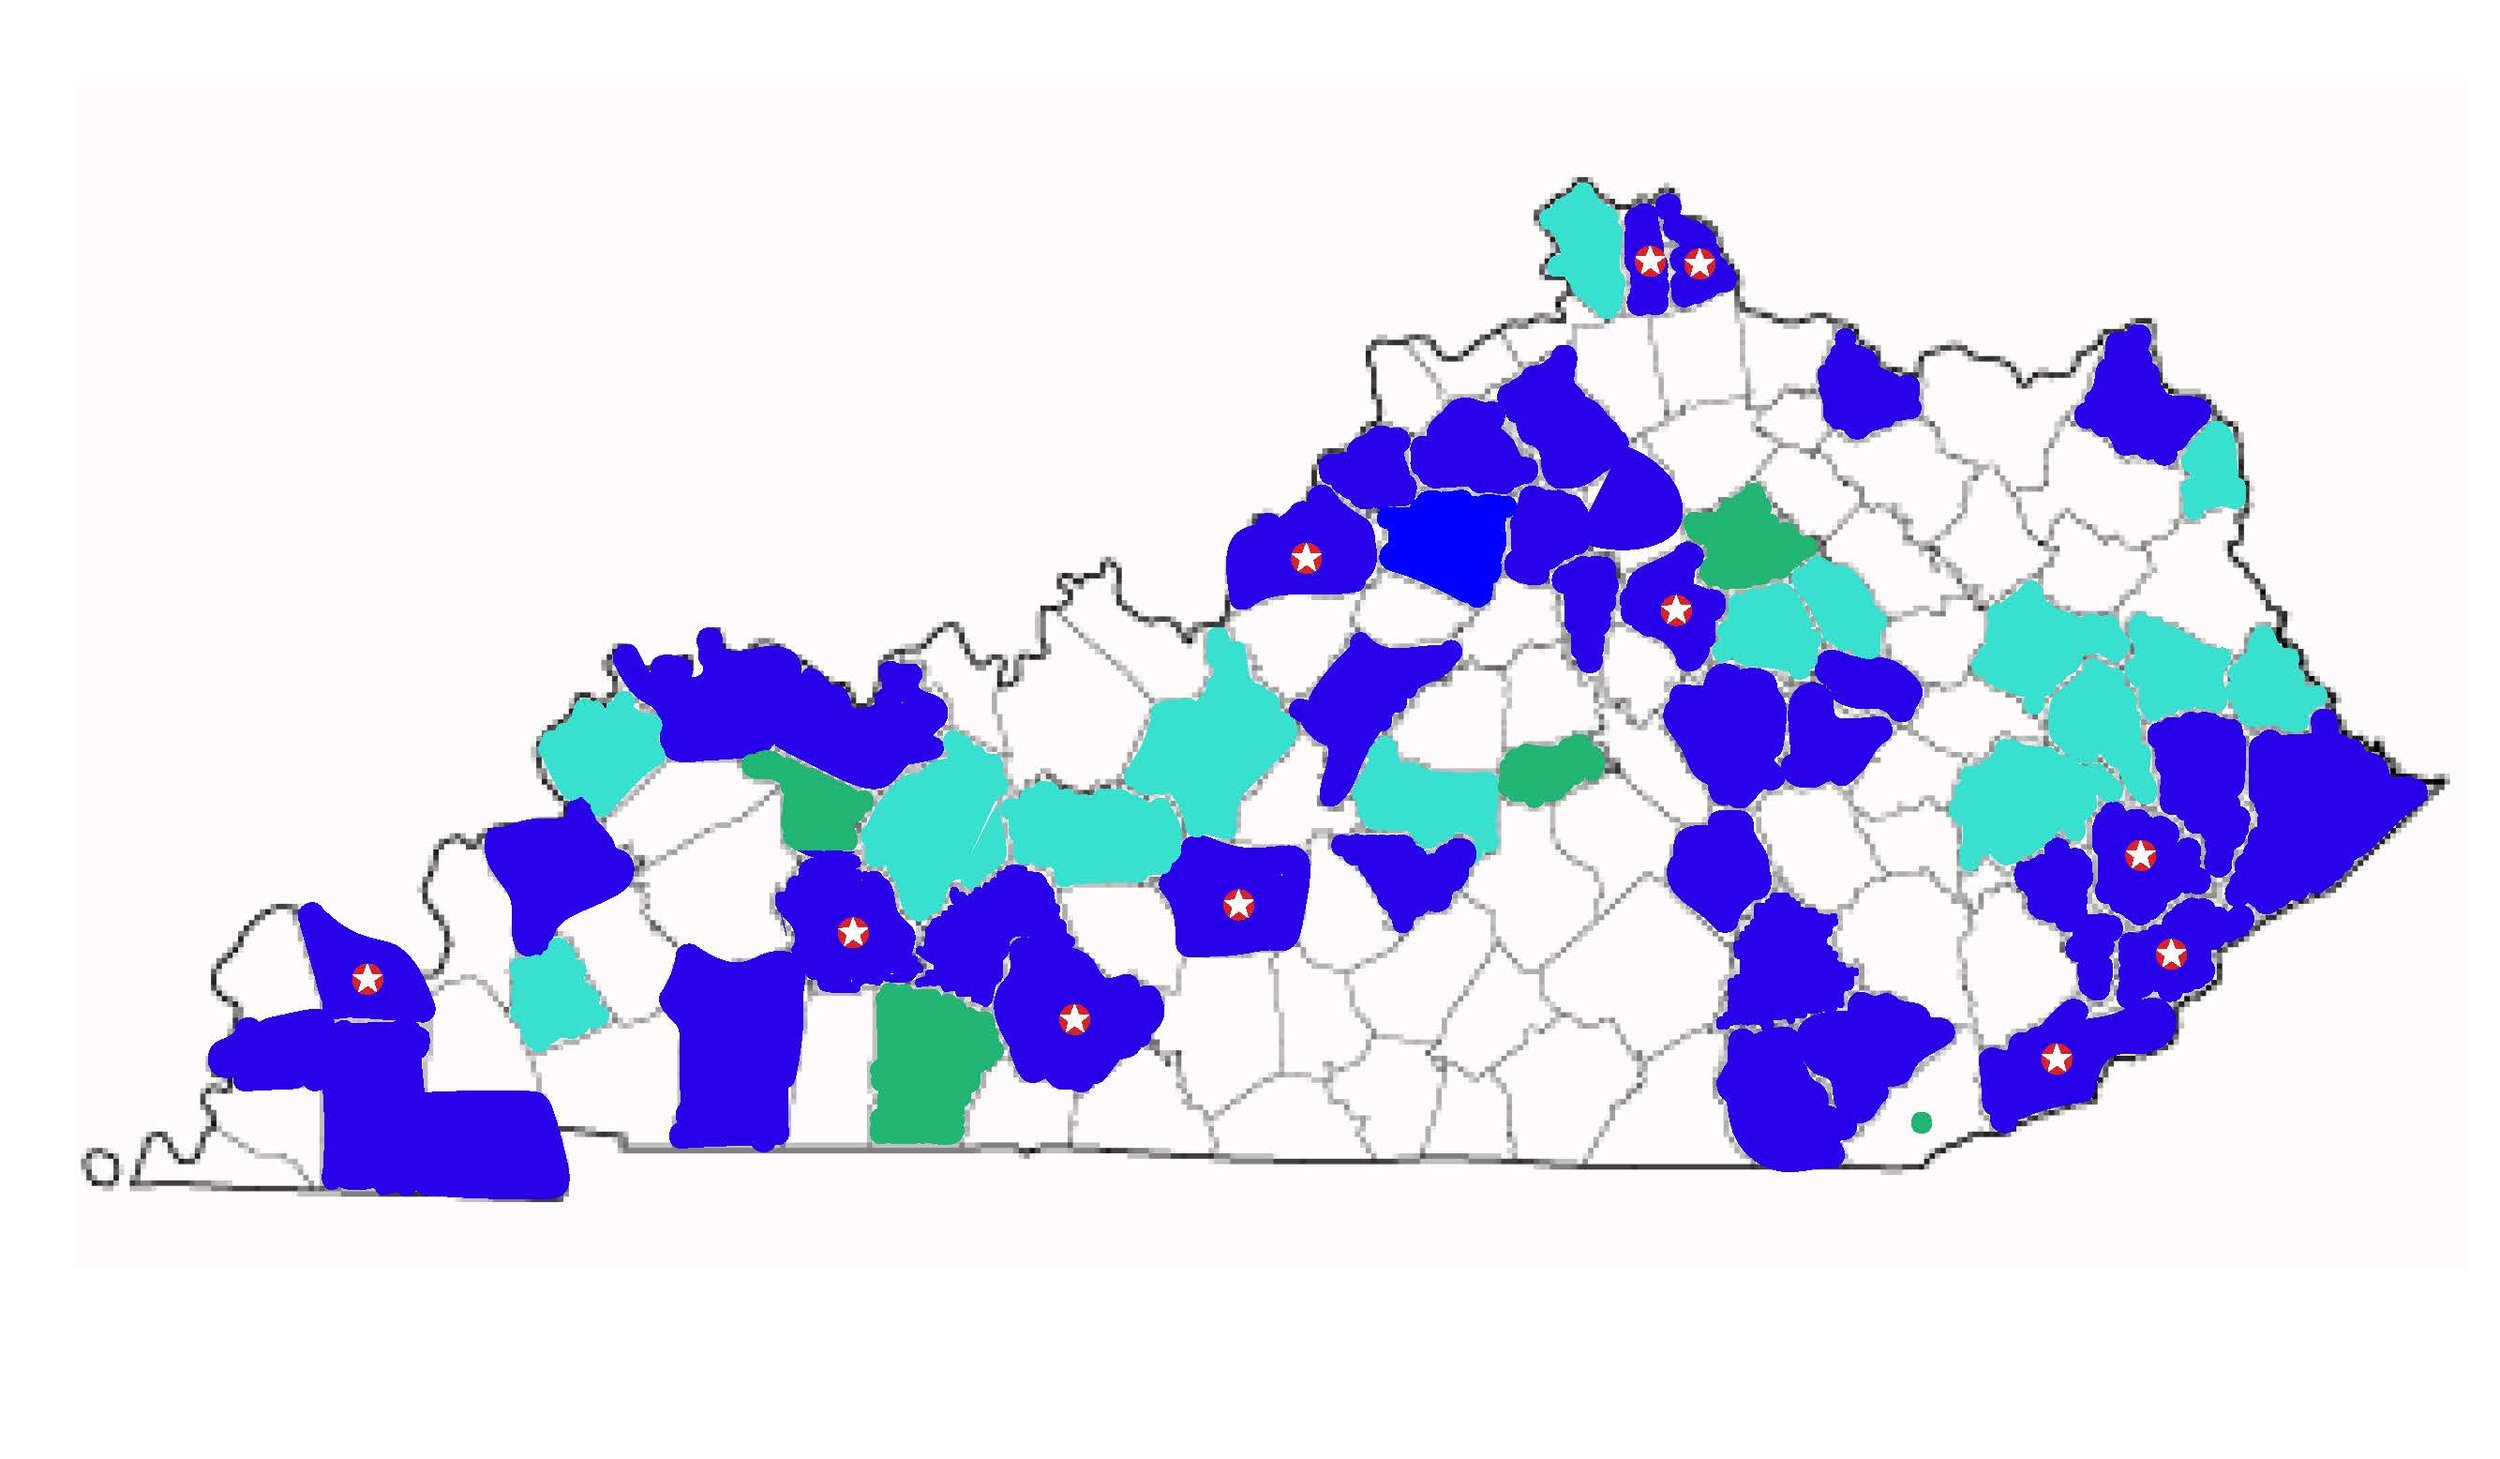 The Kentucky Rural-Urban Exchange has hosted Community Intensives in Bowling Green (2017-18), Covington and Northern Kentucky (2018), Horse Cave (2017-18), Harlan County (2016-17), Knott County (2018-19), Lexington (2016-17), Louisville (2014-15), Muhlenberg County (2019-20), Paducah (2015-16), and Whitesburg (2014-15). The blue counties on the map represent counties where RUX alumni live. The green counties represent counties where alumni grew up, or were living for part of their participation in the program.